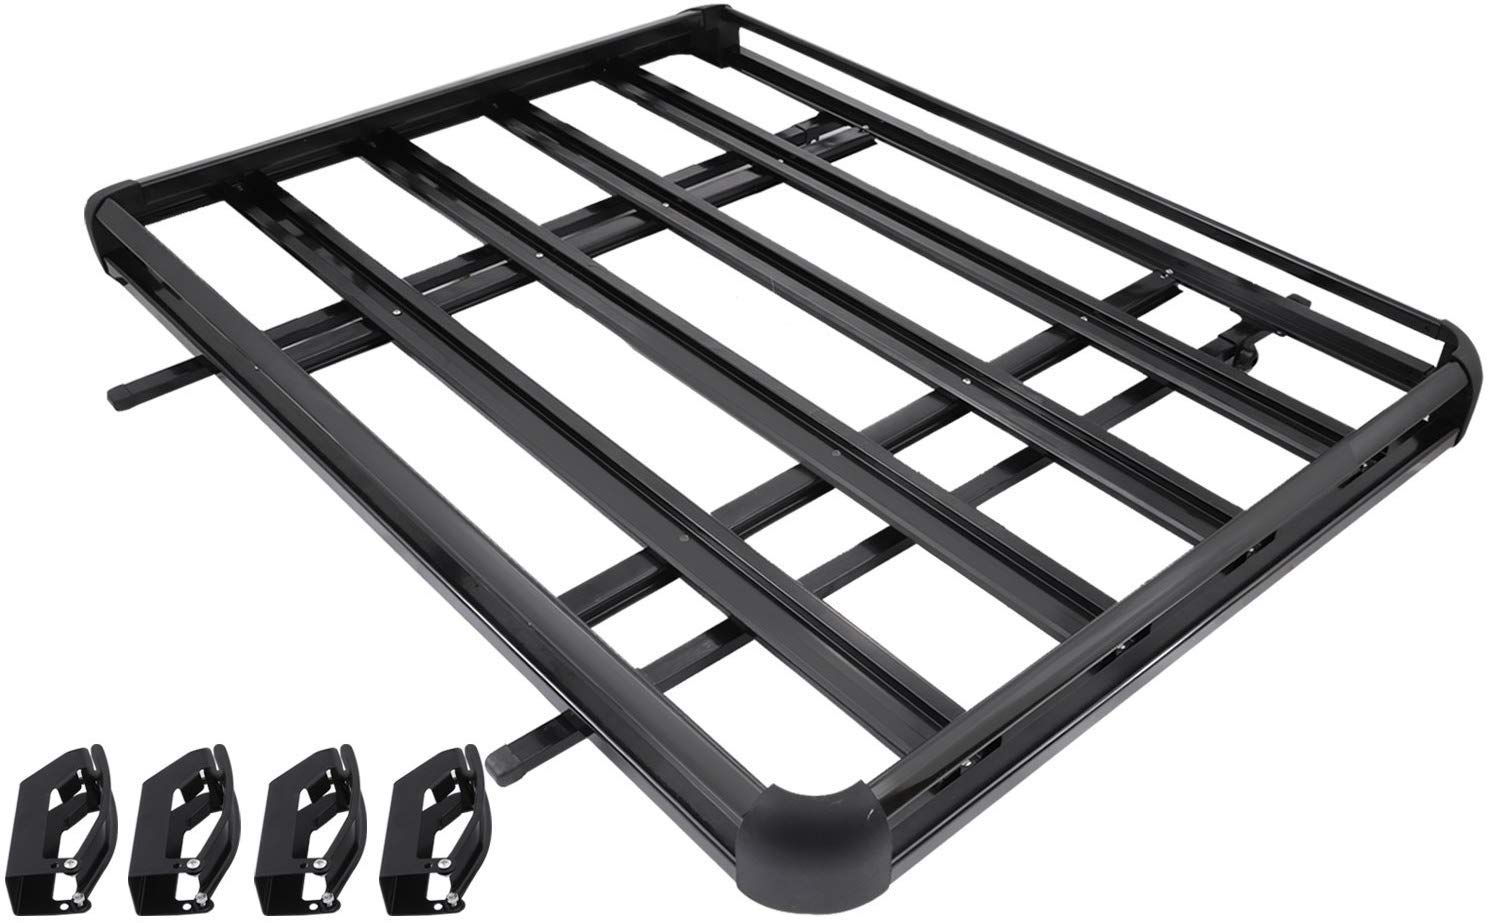 Black Tuntrol Universal Roof Basket Roof Rack Basket/ Aluminum 64x40 Inch Rooftop Cargo Basket for Car Top Luggage Holder Carrier Basket SUV Storage